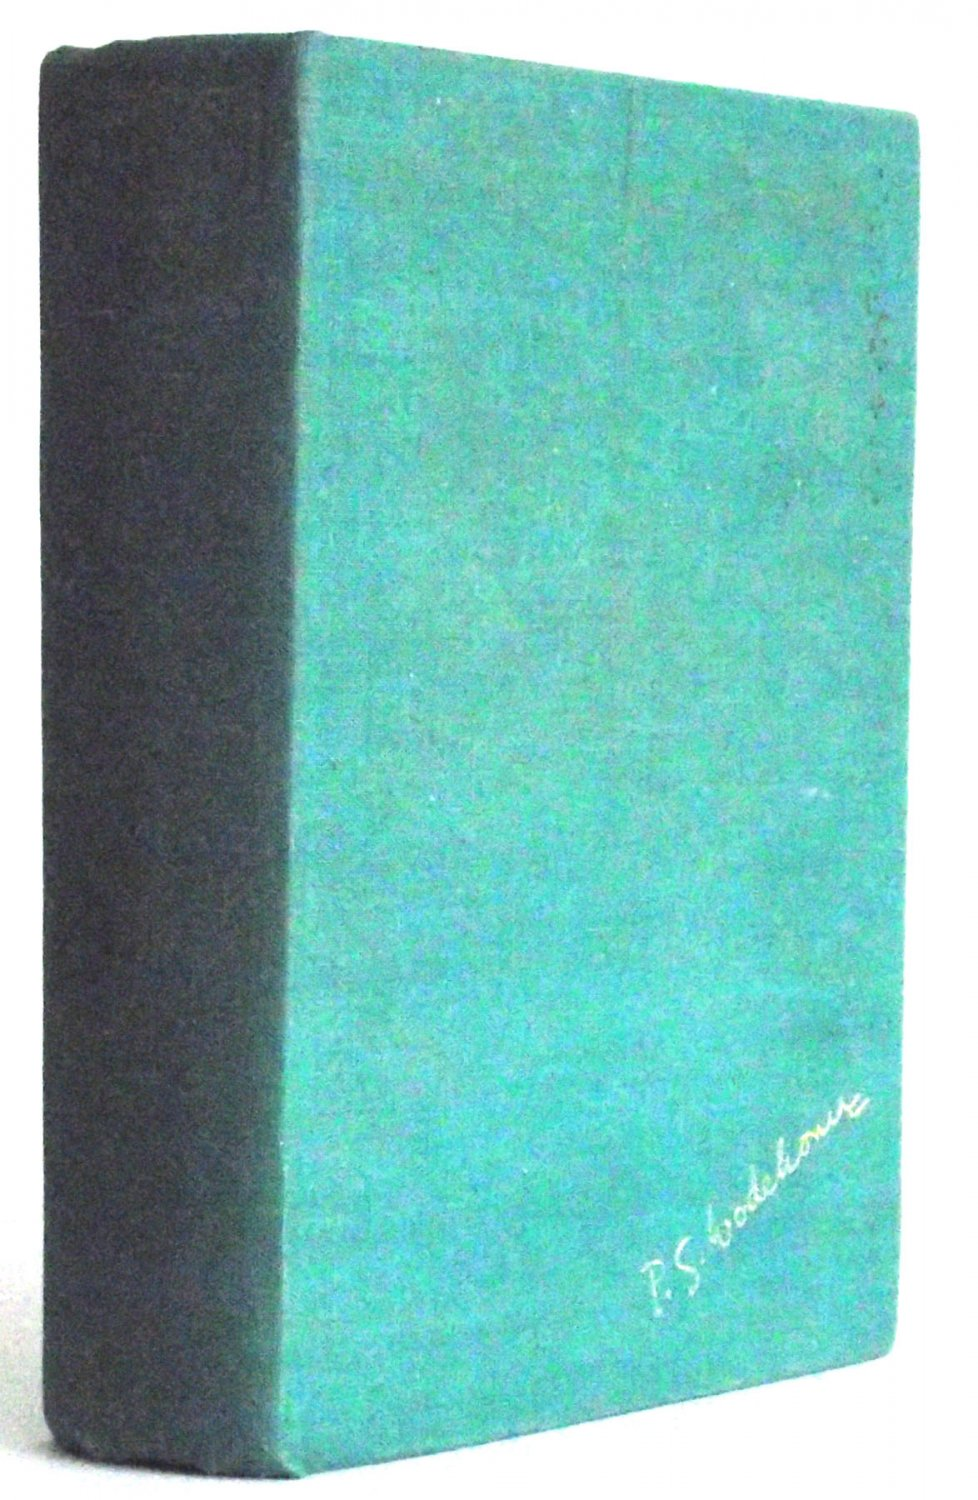 P.G. Wodehouse The Week-End Wodehouse with Introduction by Hilaire Belloc c1951